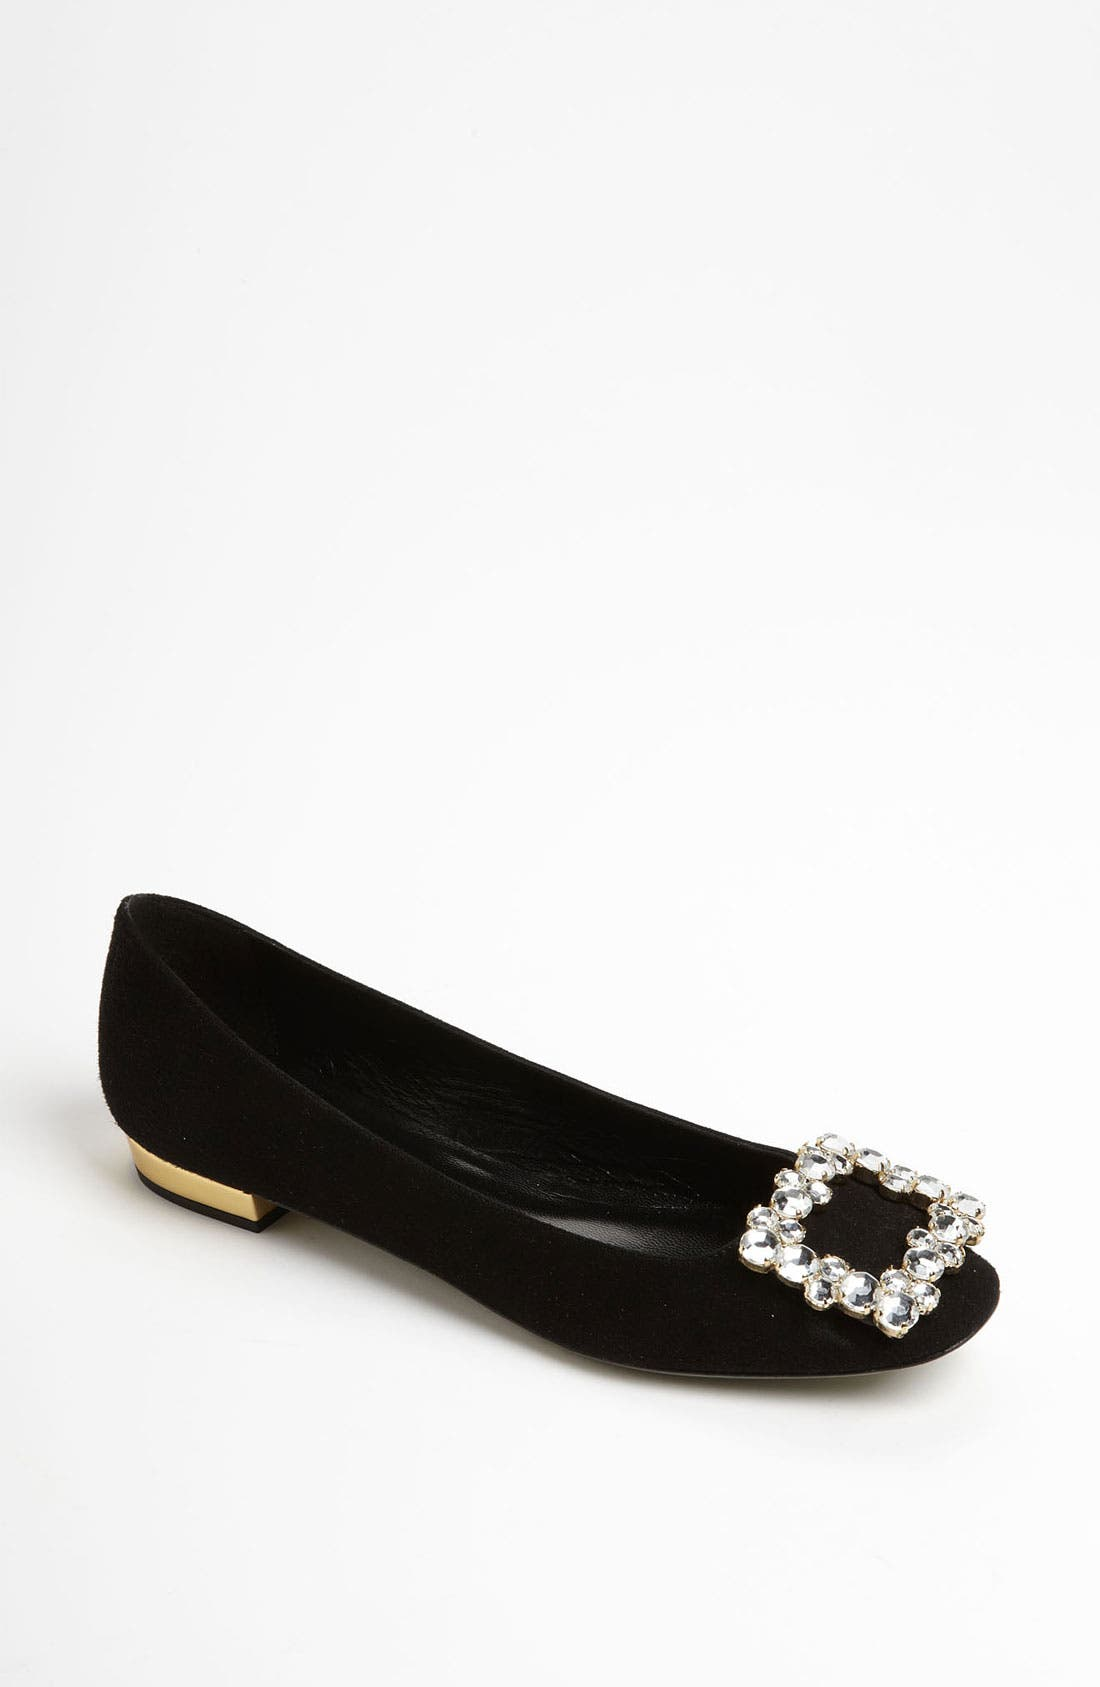 Alternate Image 1 Selected - kate spade new york 'norella' flat